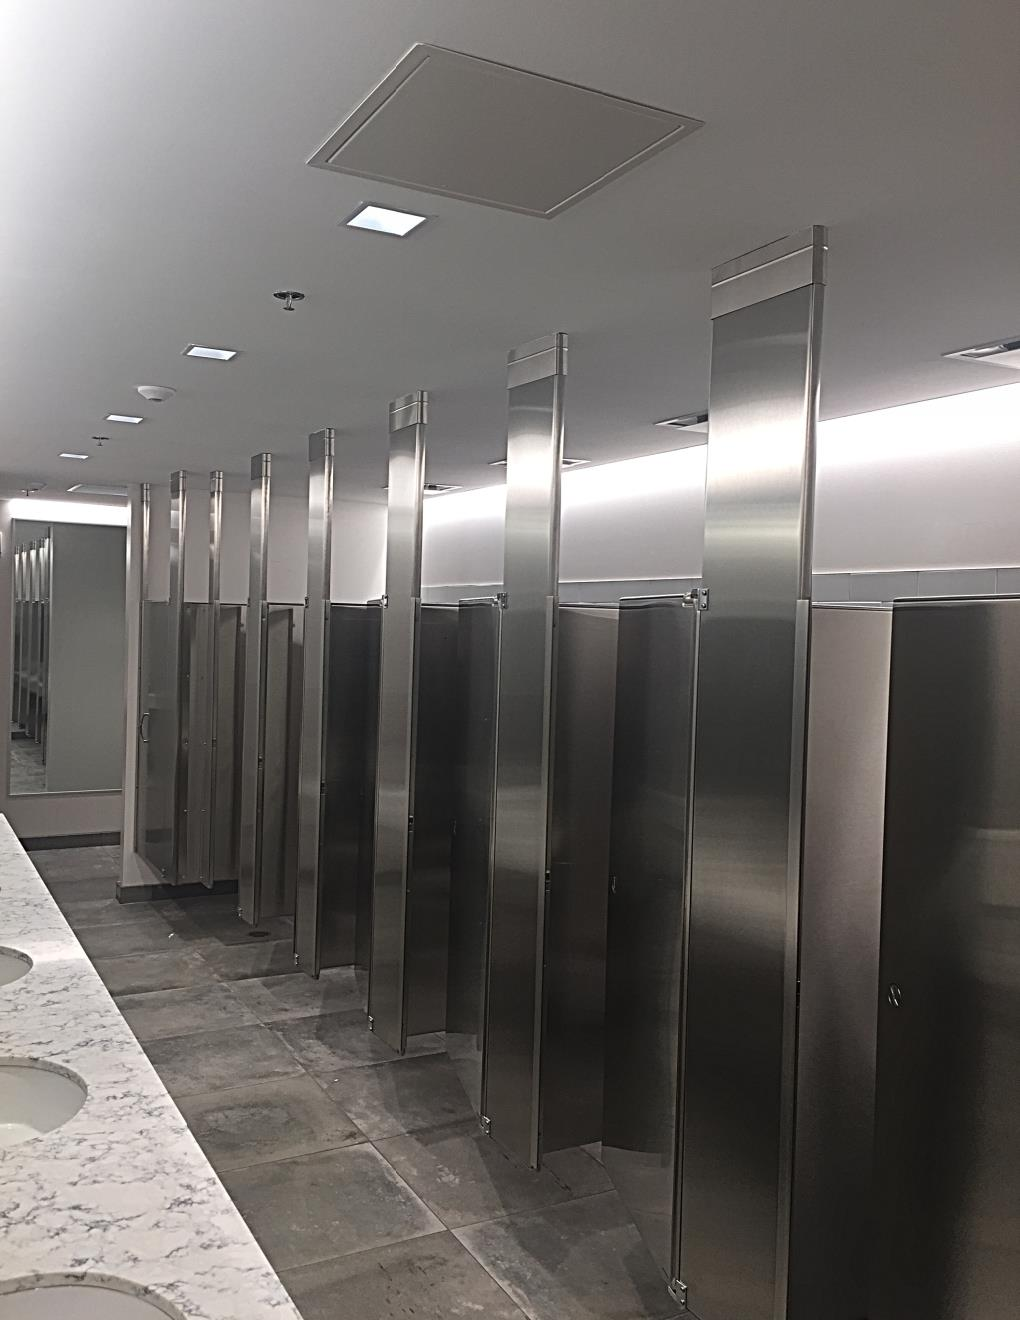 Restroom partitions and accessories - Fitting the needs demanded by your project, we are ready to install restroom partitions with any assortment of accessories ranging from automatic soap dispensers, paper towel dispensers, toilet paper holders, mirrors, grab bars, and more!